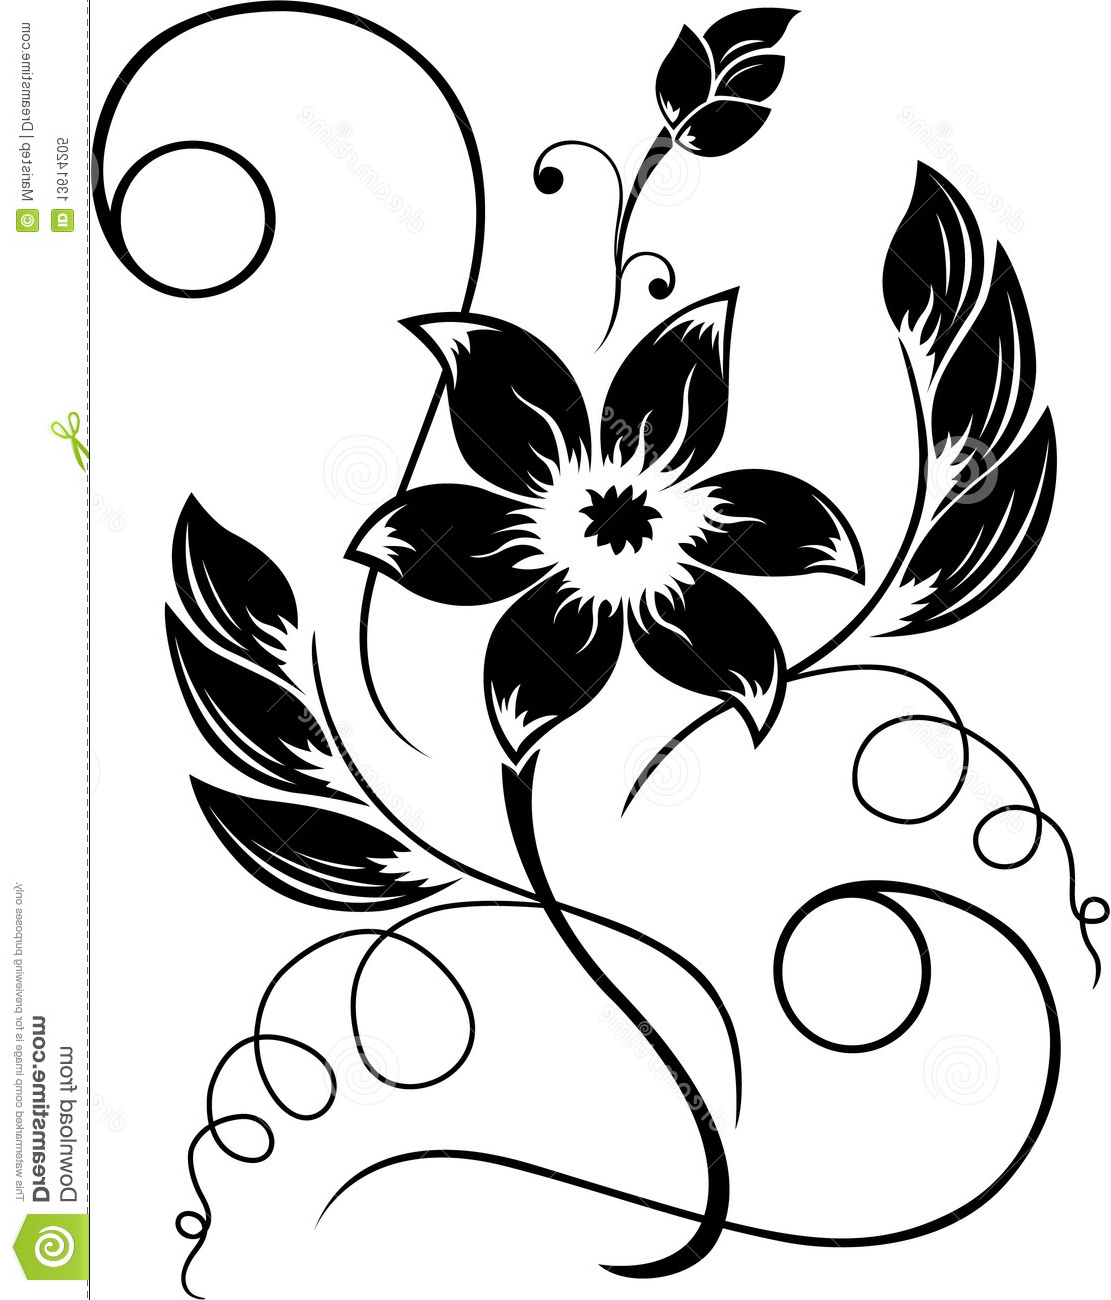 Black And White Flower Drawing at GetDrawings.com | Free for ...